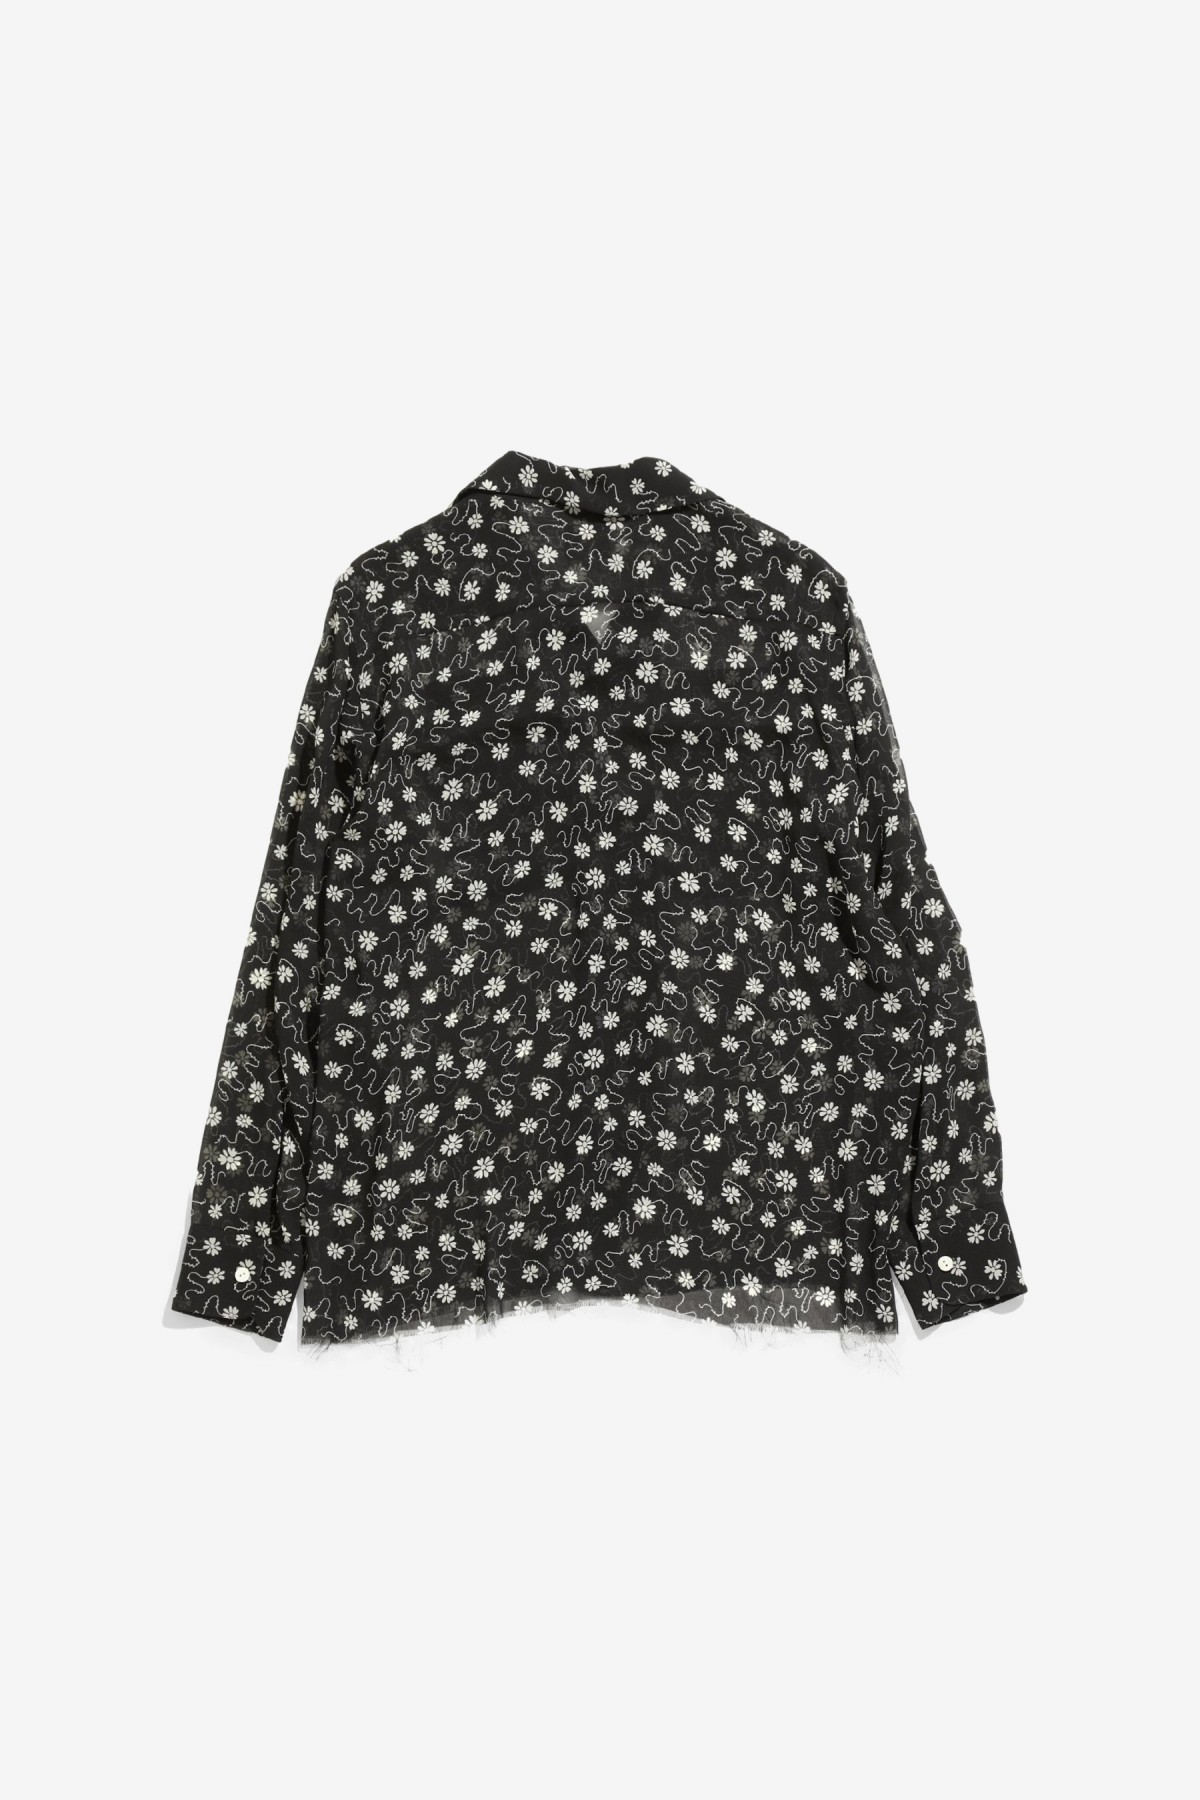 Needles C.O.B. Classic Shirt in Floret